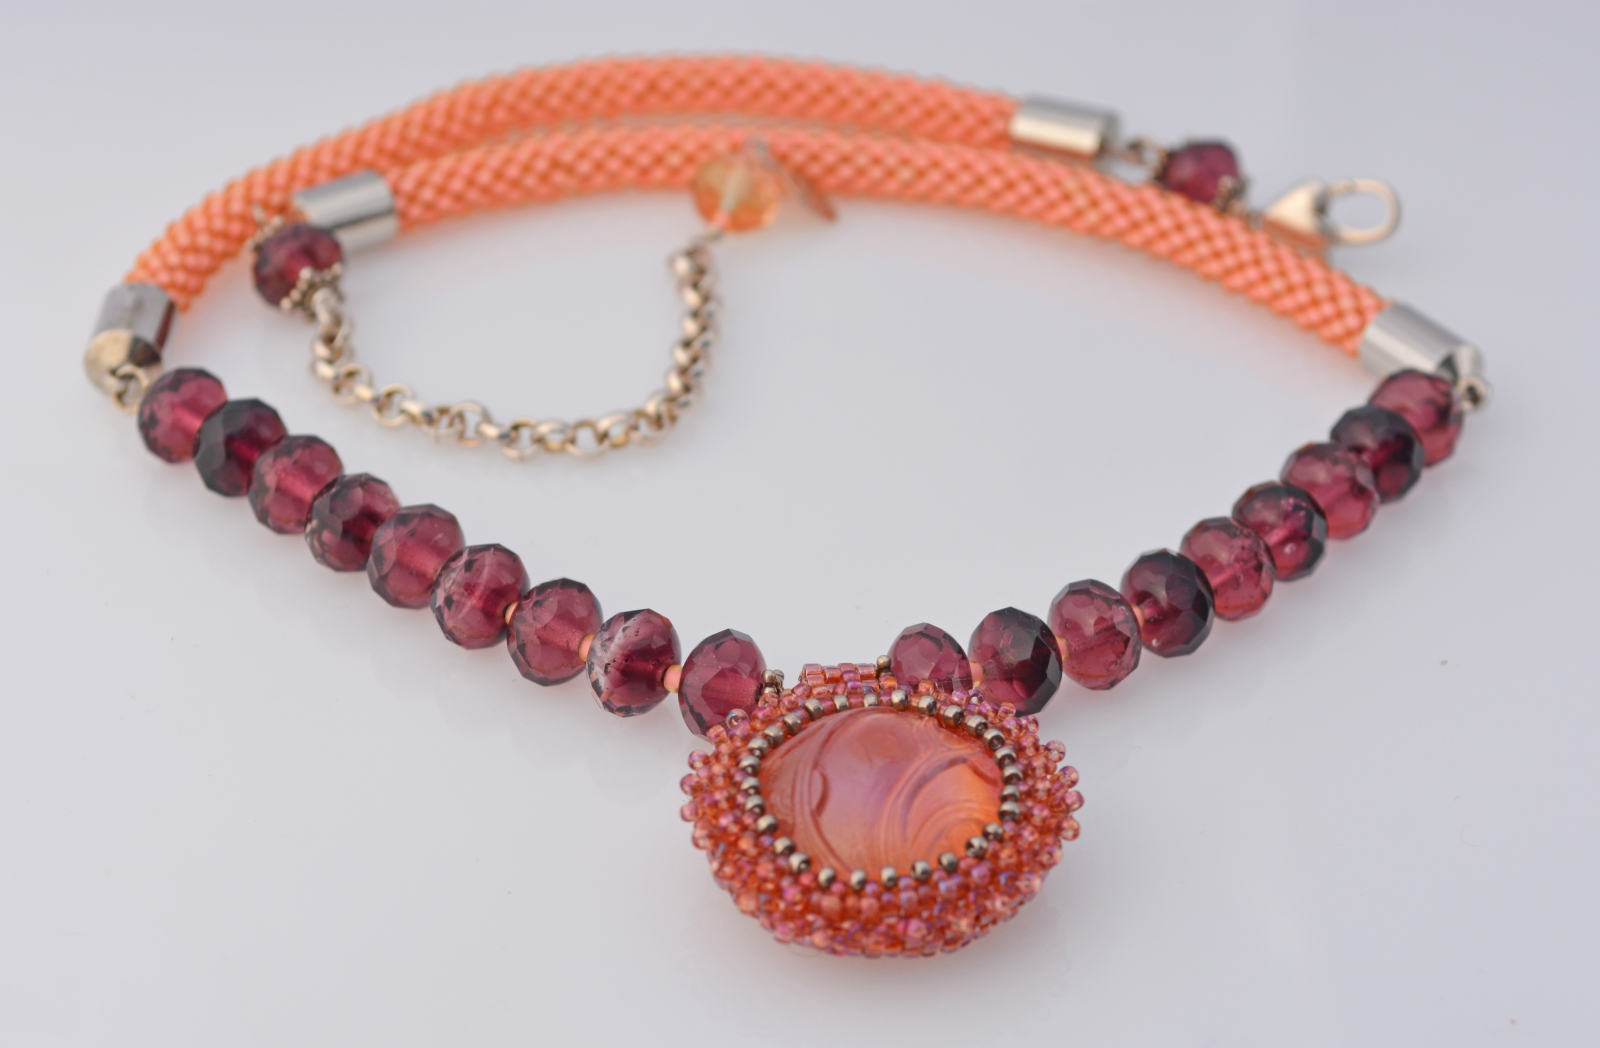 Artisan necklace in peach